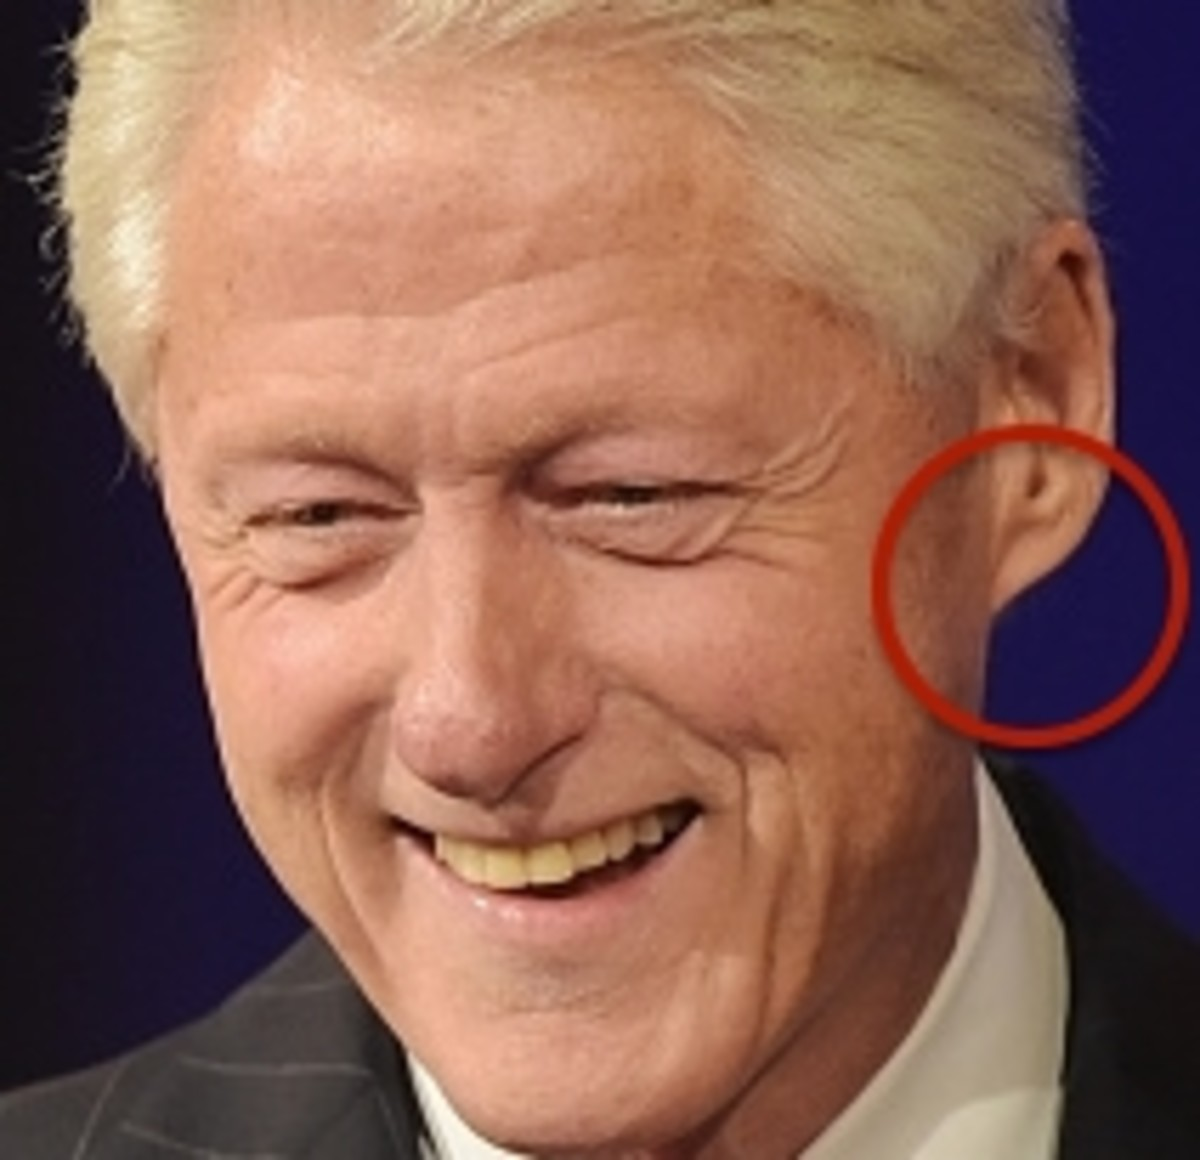 This is the SAME earlobe!